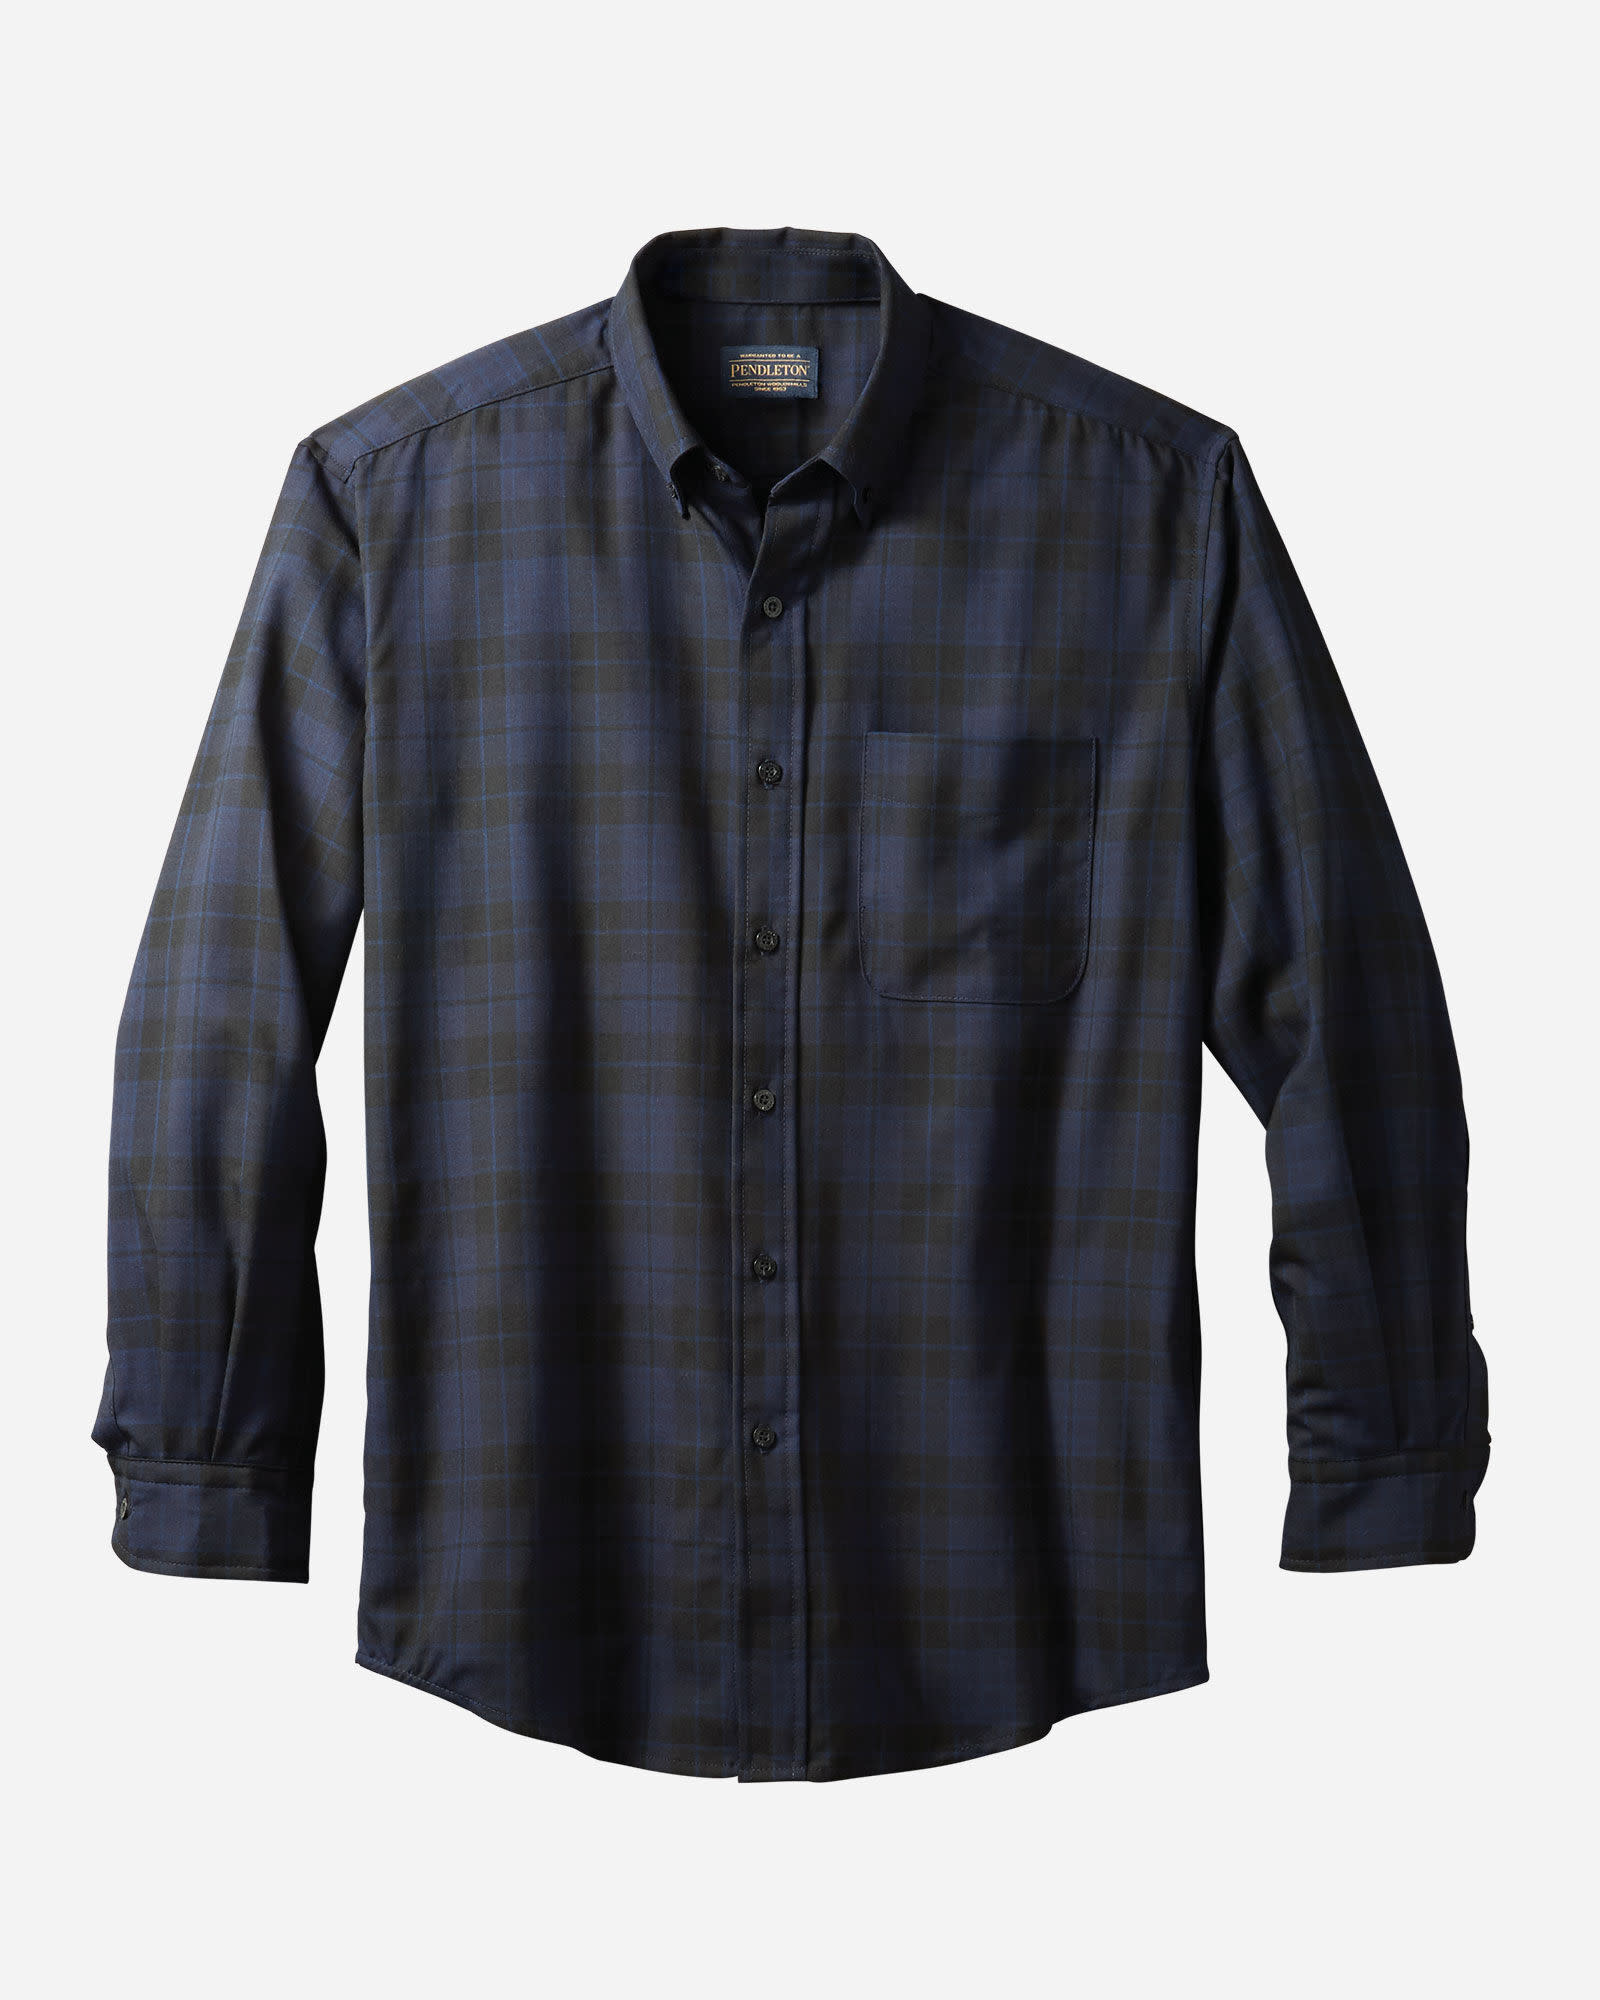 PENDLETON PENDLETON SIR PENDLETON SHIRT